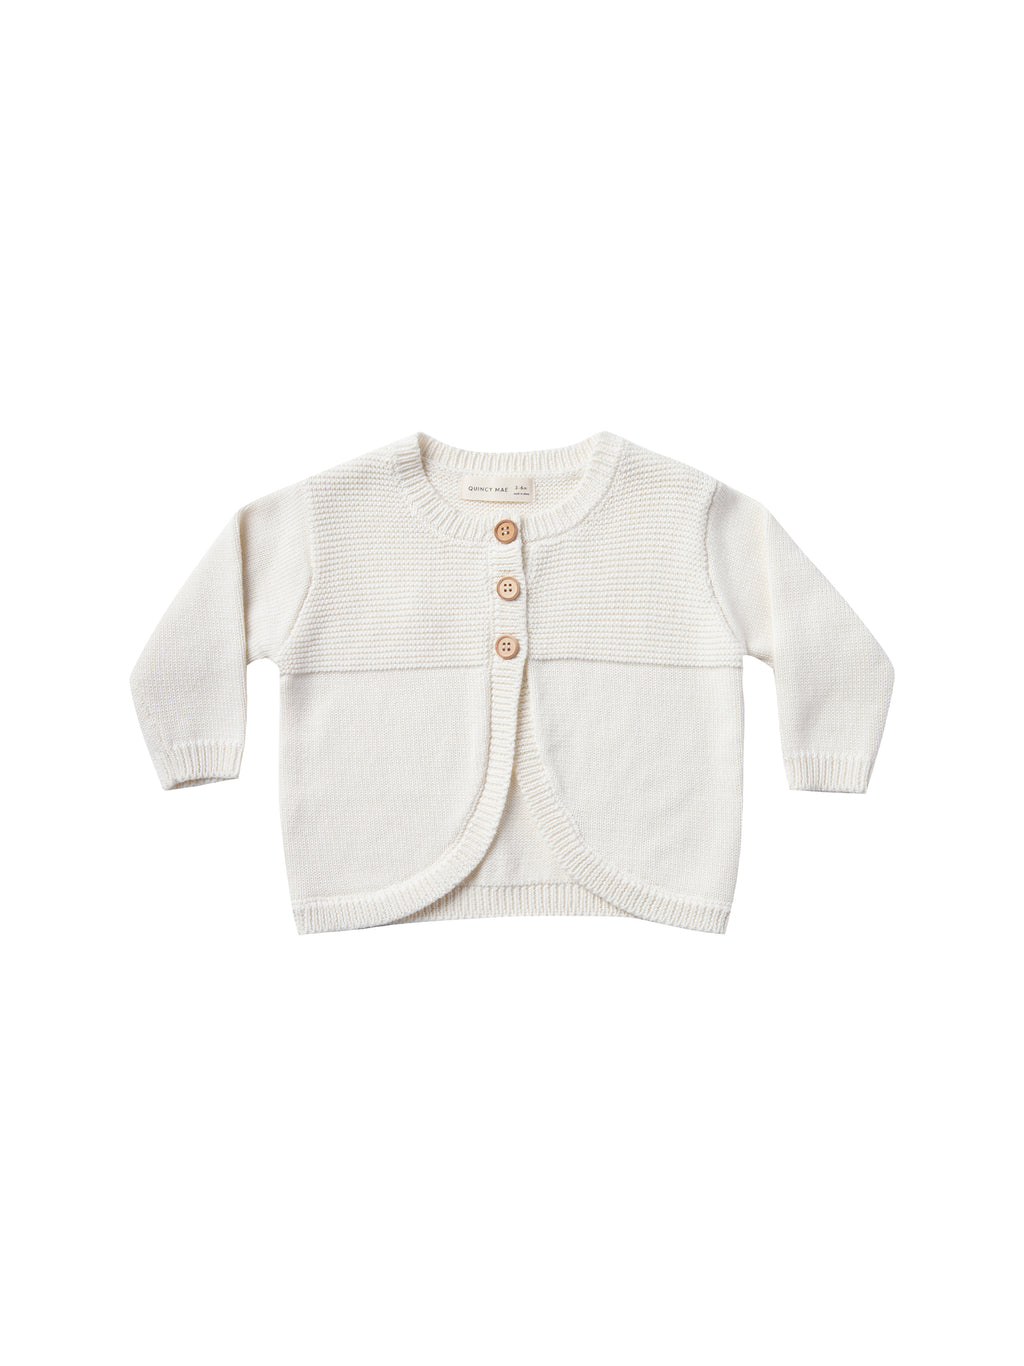 Quincy Mae Knit Cardigan - Ivory